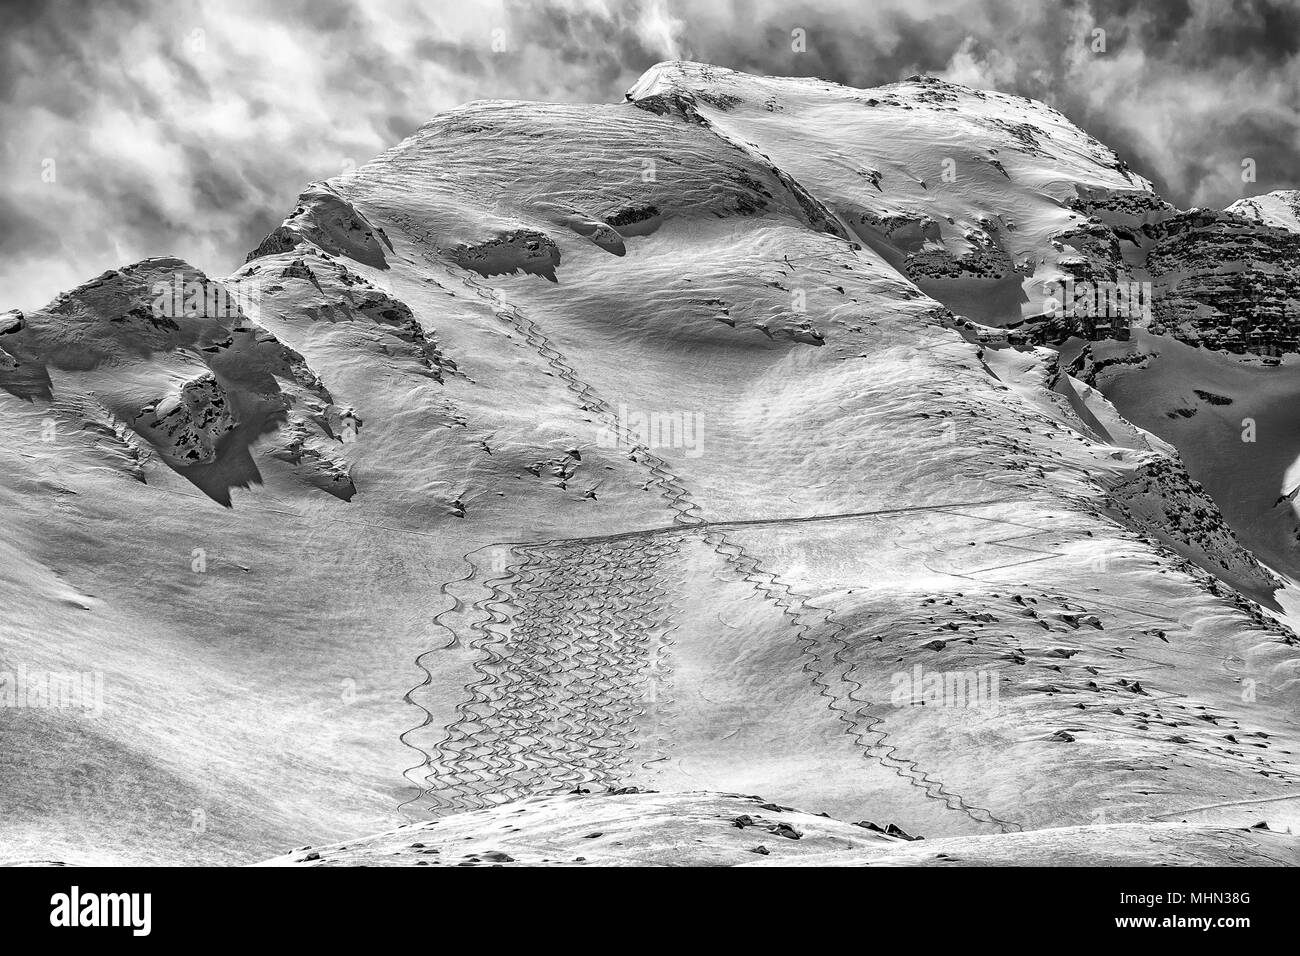 backcountry skiing trails snow detail tracks - Stock Image